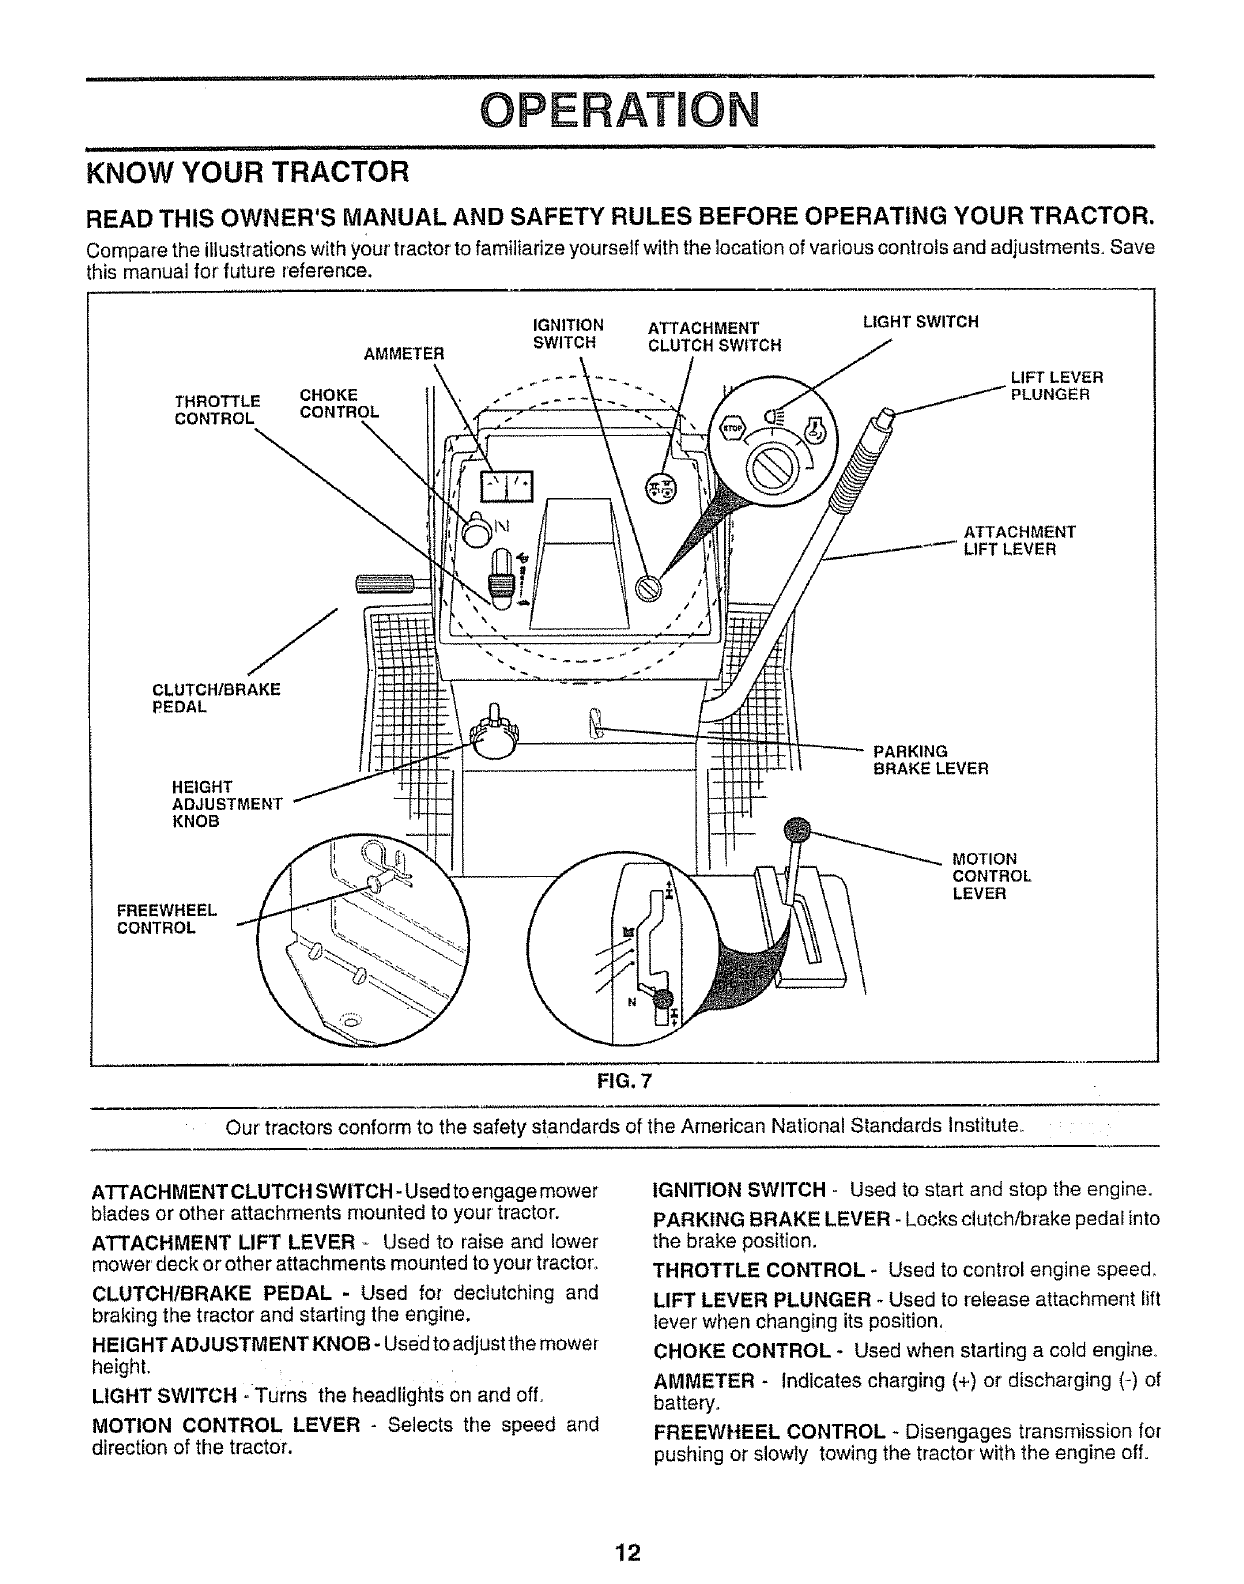 Craftsman 917258691 User Manual Tractor Manuals And Guides L0806170 Wiper Motor Wiring Iains Seven I Hhh Operatmo